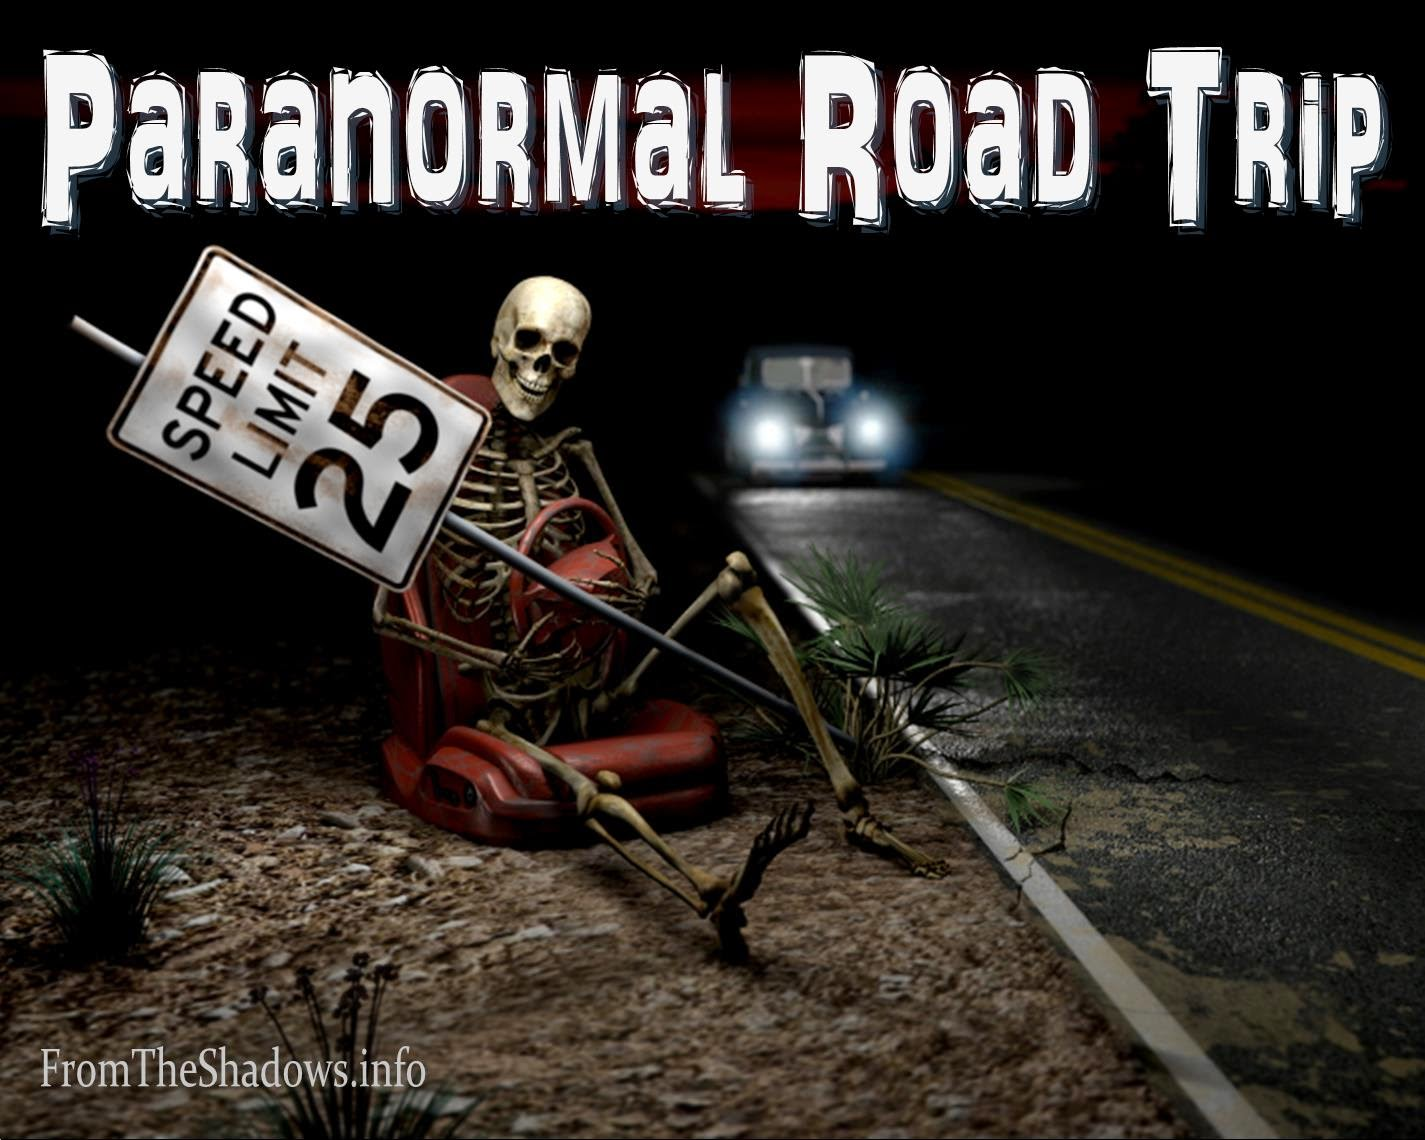 Paranormal Road Trip: Destination New Harbor with Matthew Quinn Martin